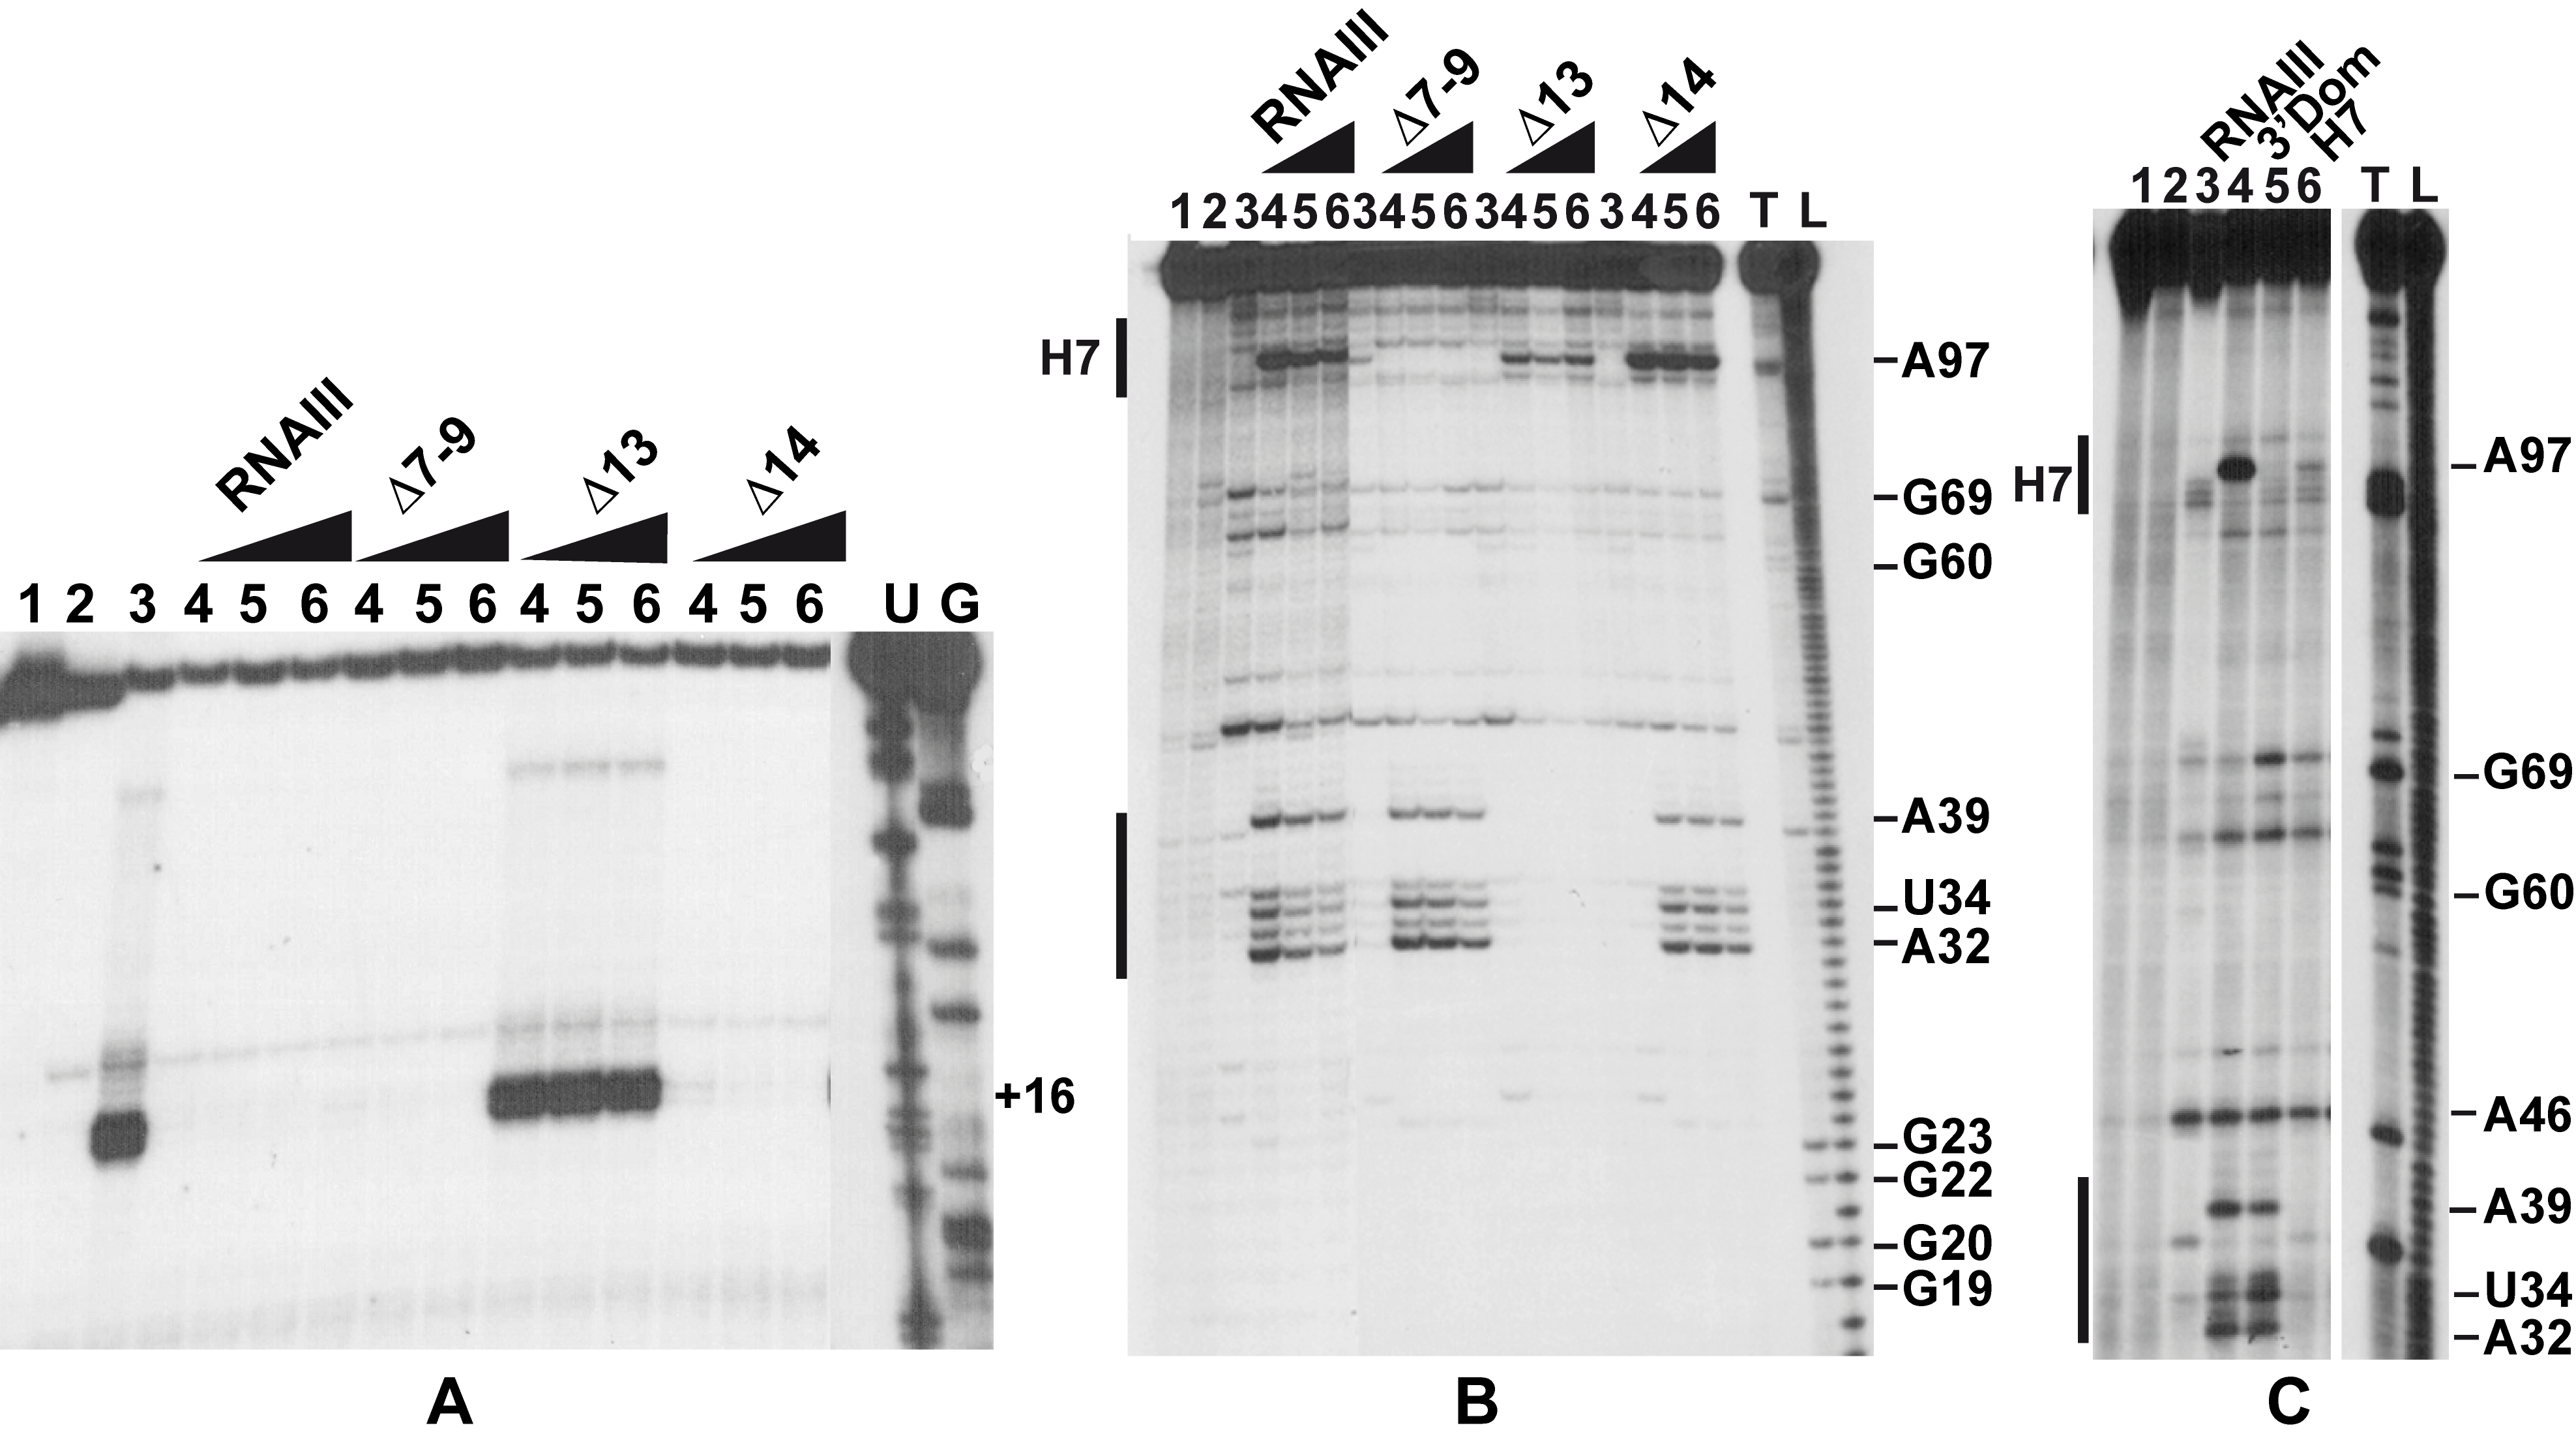 The RNAIII-<i>coa</i> mRNA complex prevents ribosome binding and promotes RNase III cleavages.